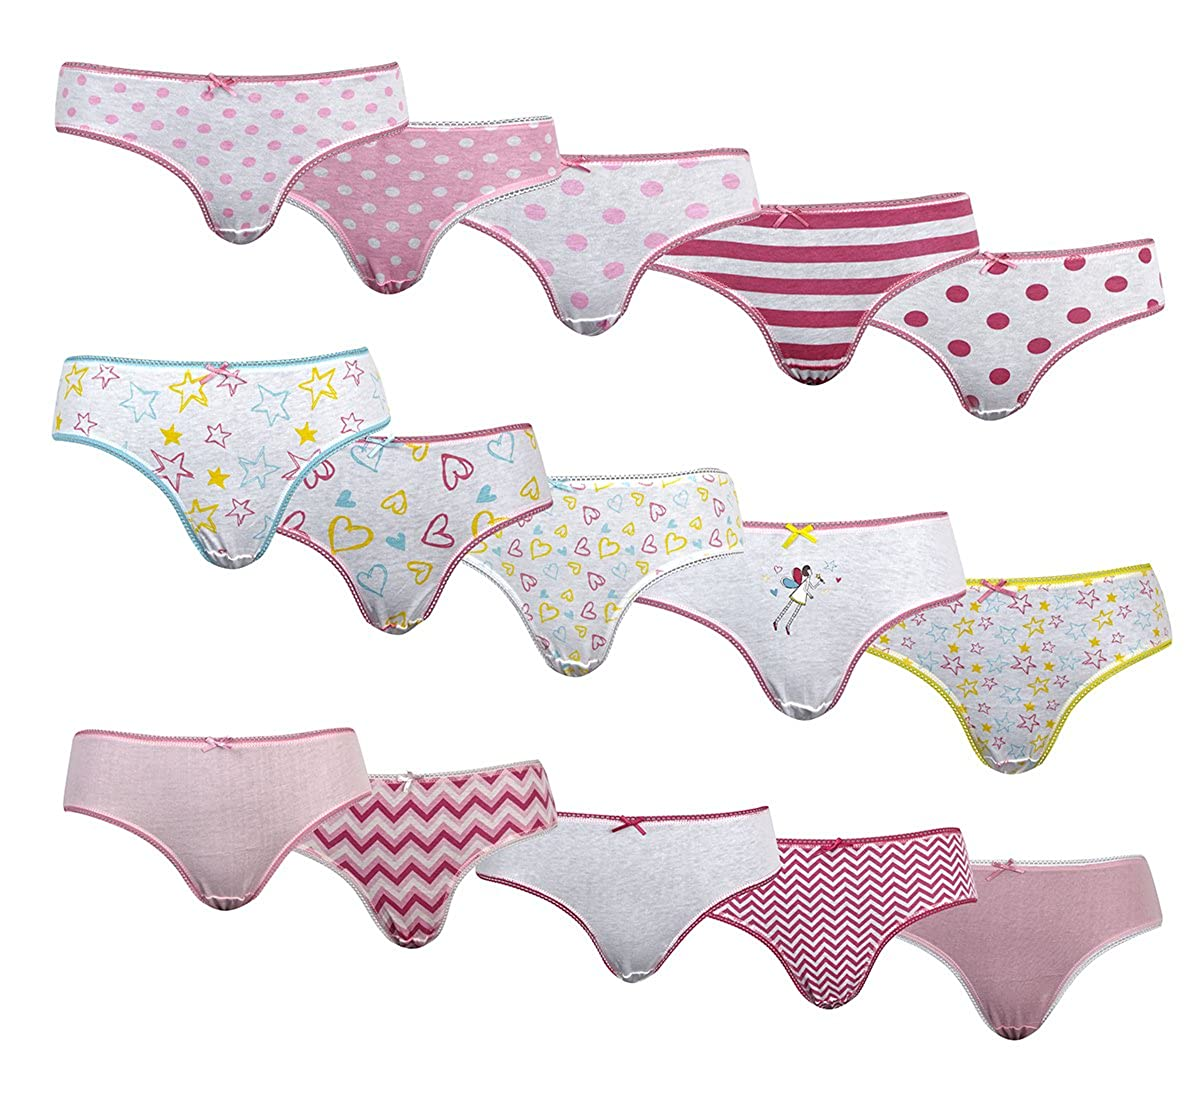 4Kidz Girls 5-10 Pair Multibuy Patterned Cotton Panties